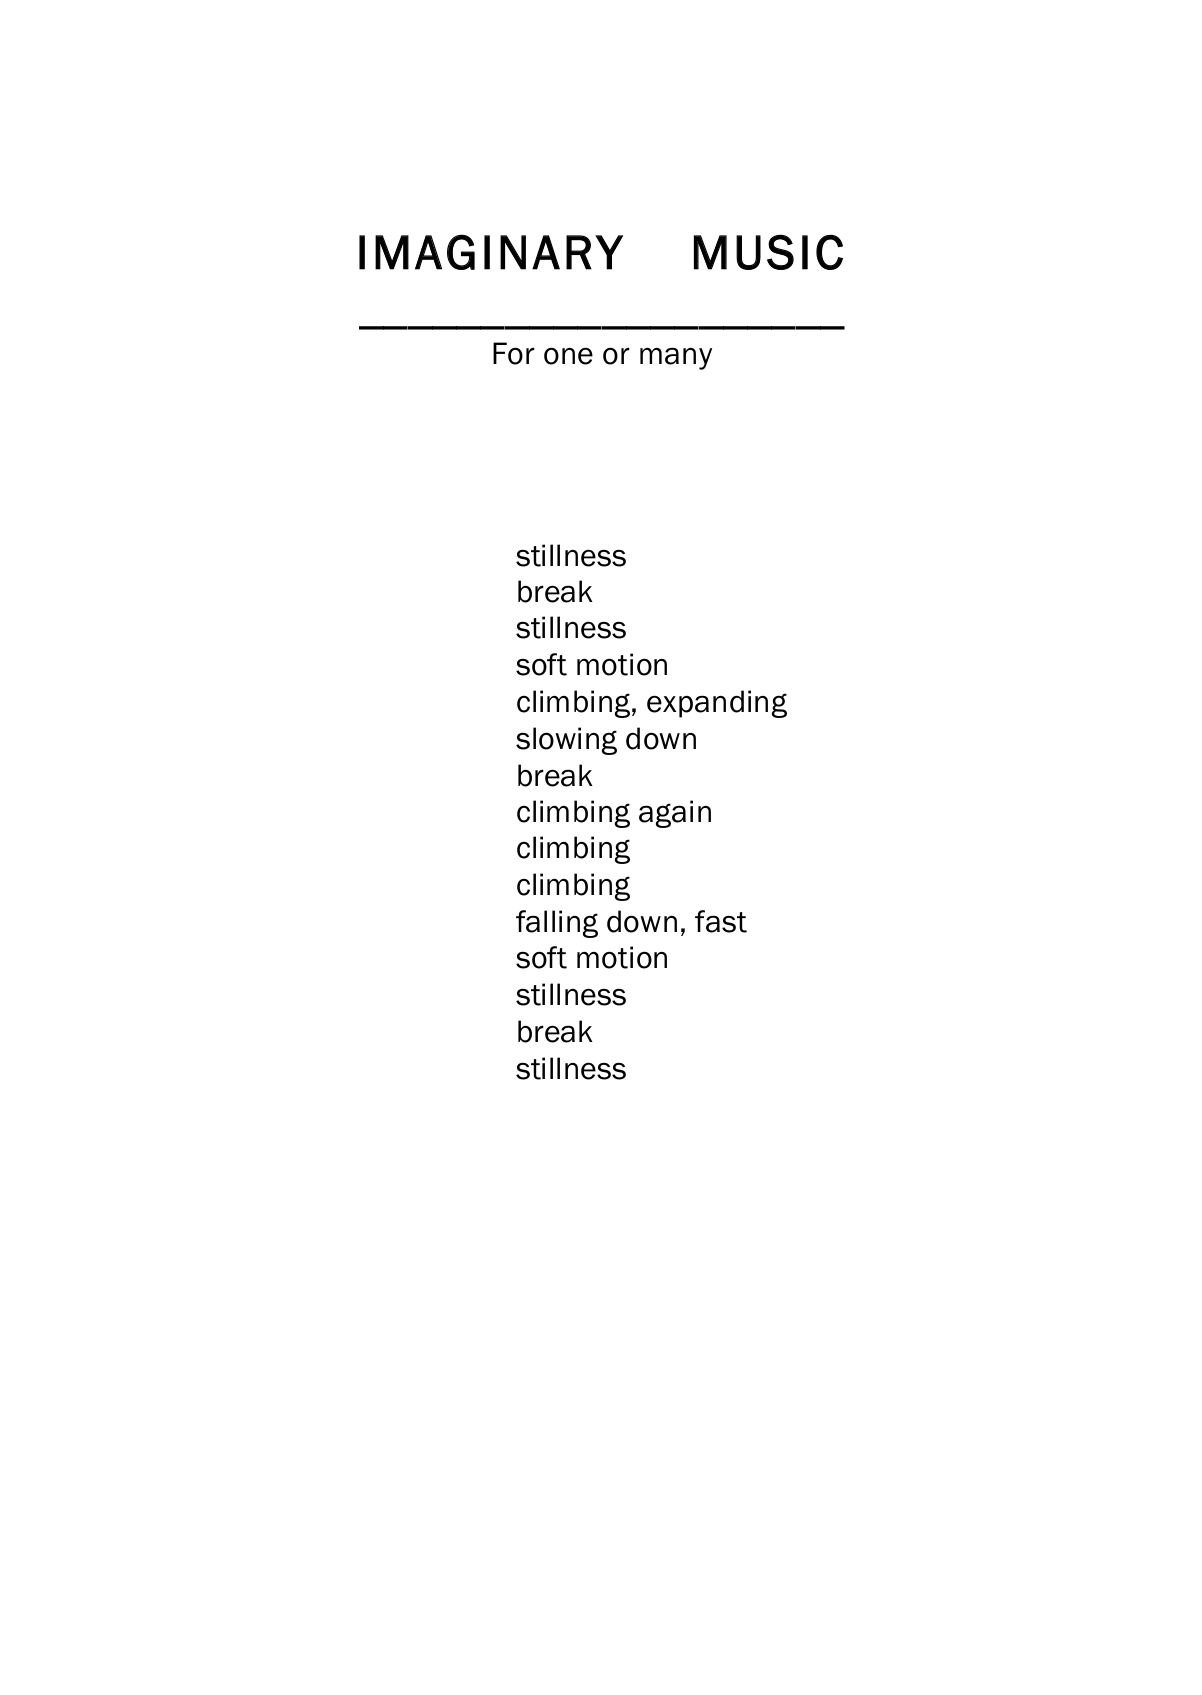 Imaginary music